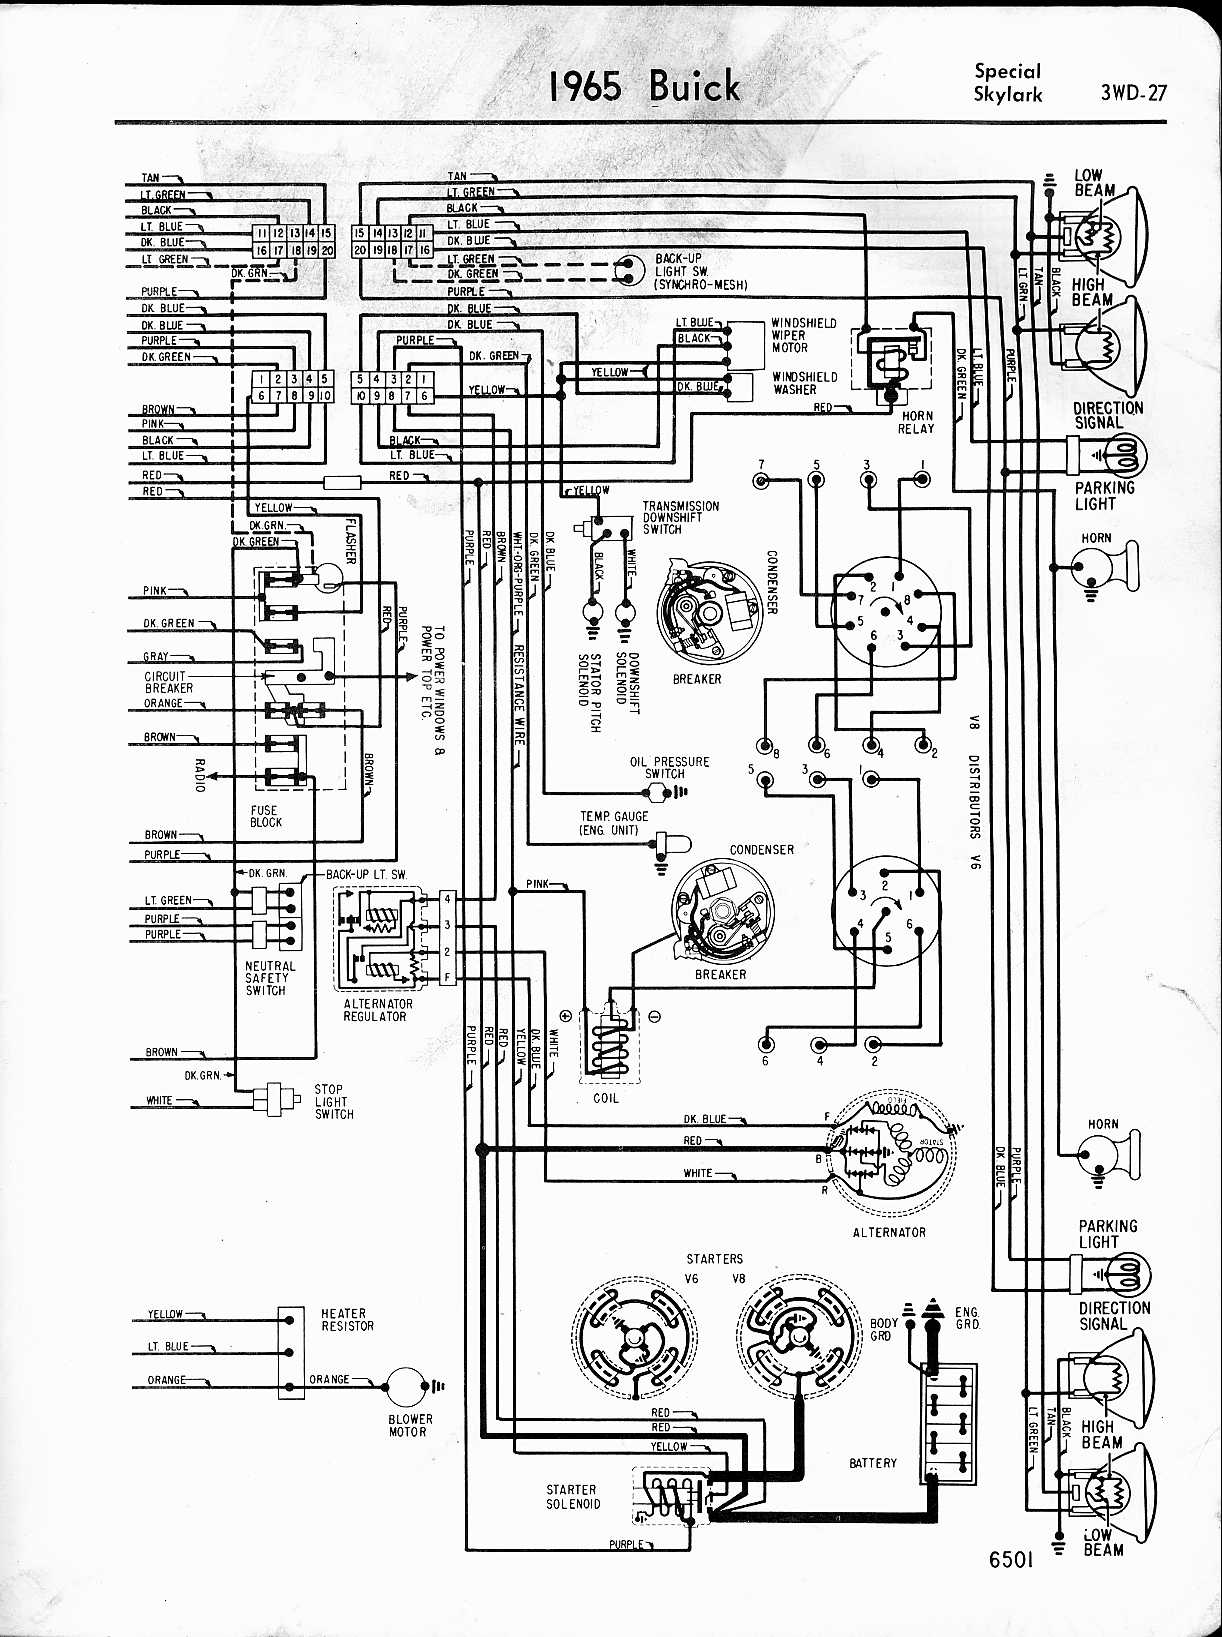 Dodge Valiant Wiring Diagram Schematic